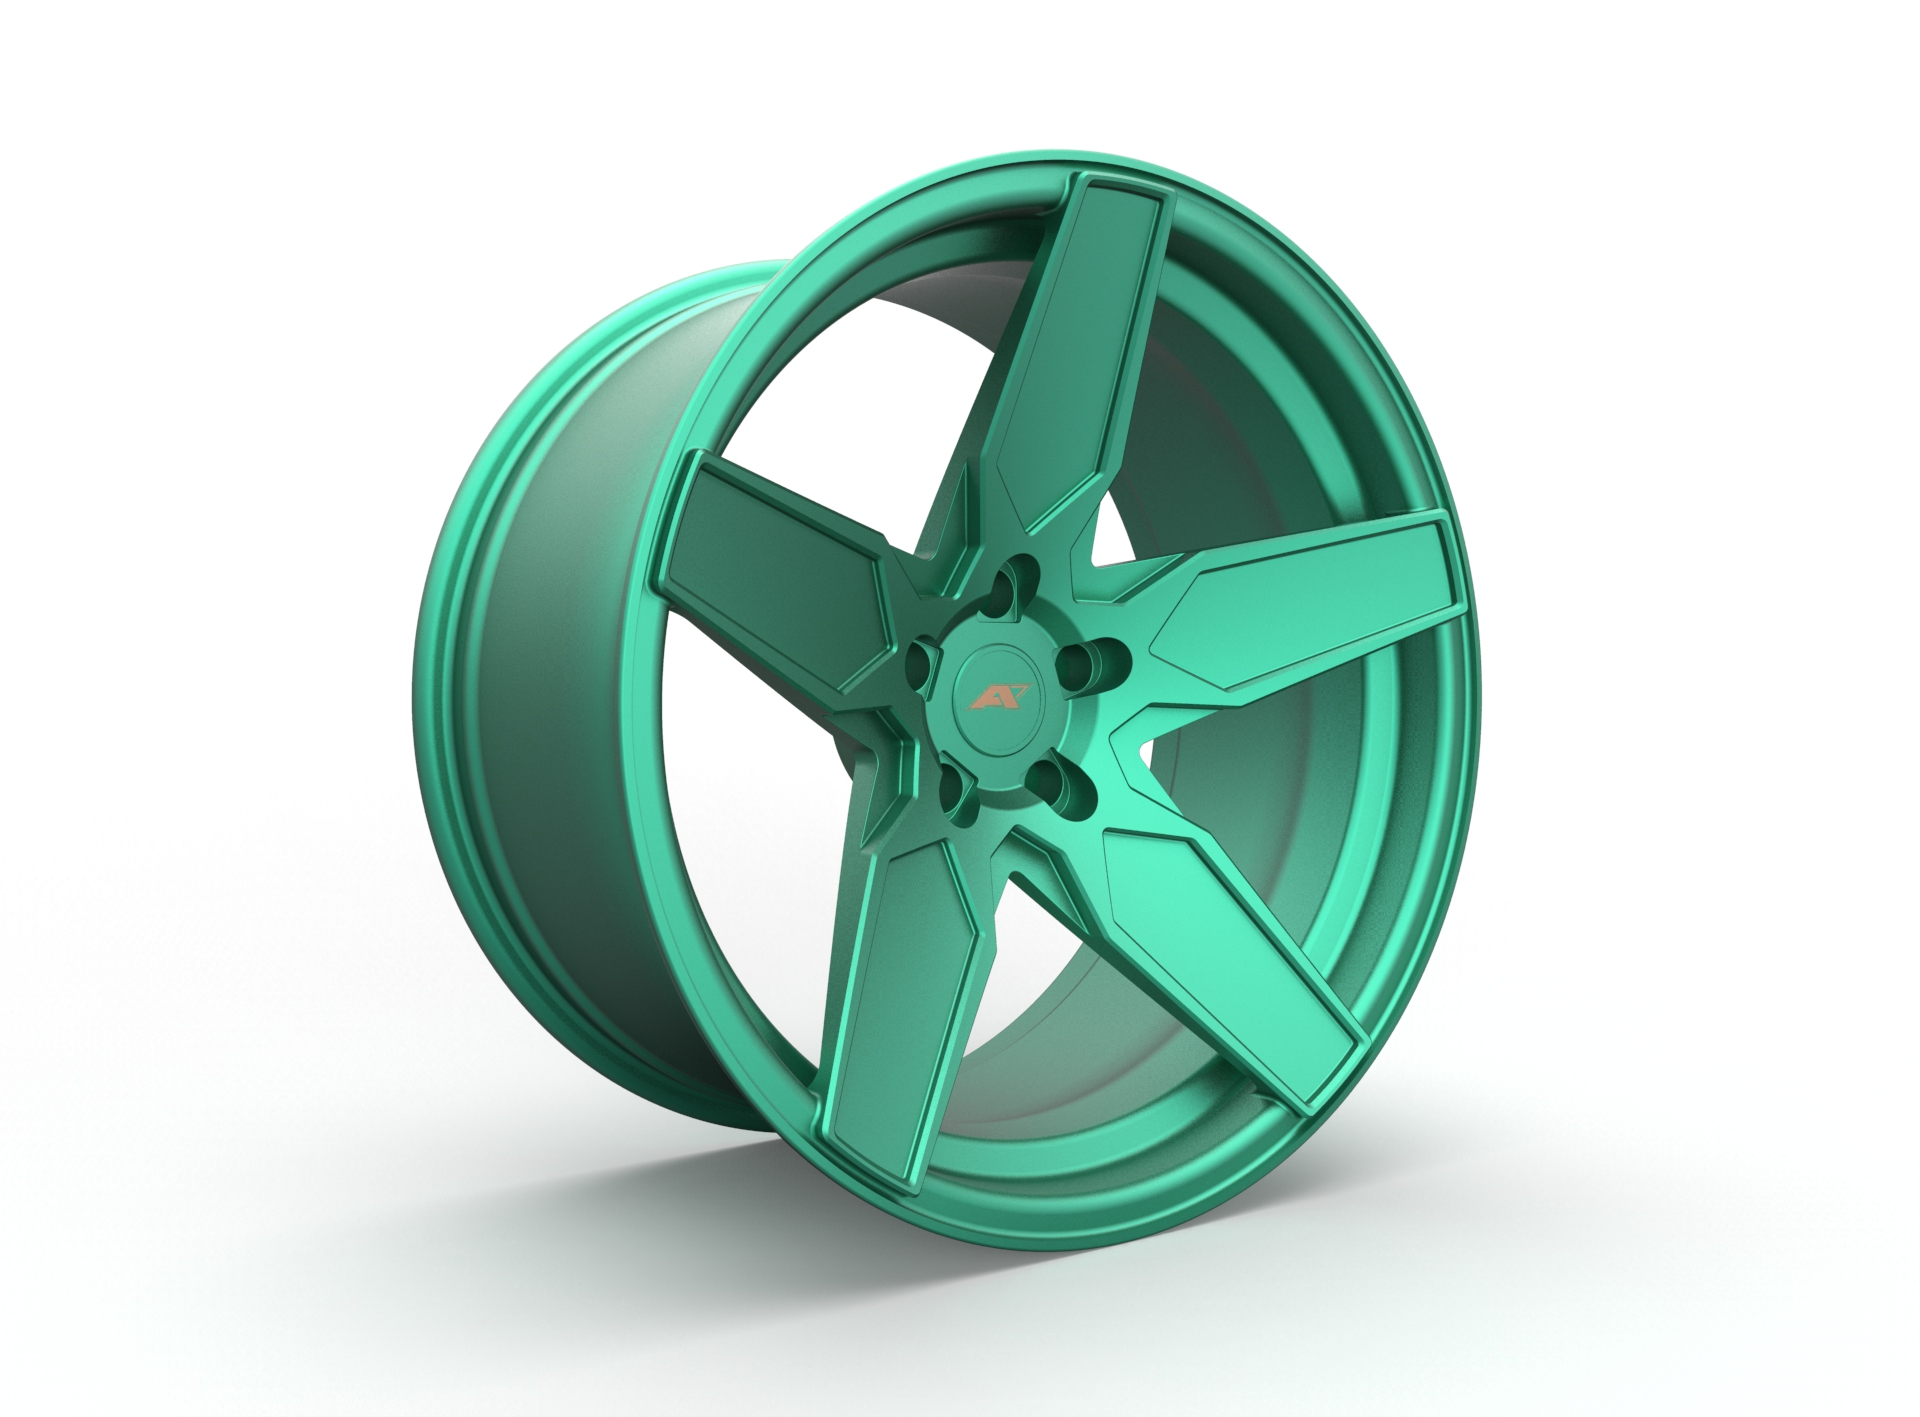 alphamale_wheels_4.140.jpg